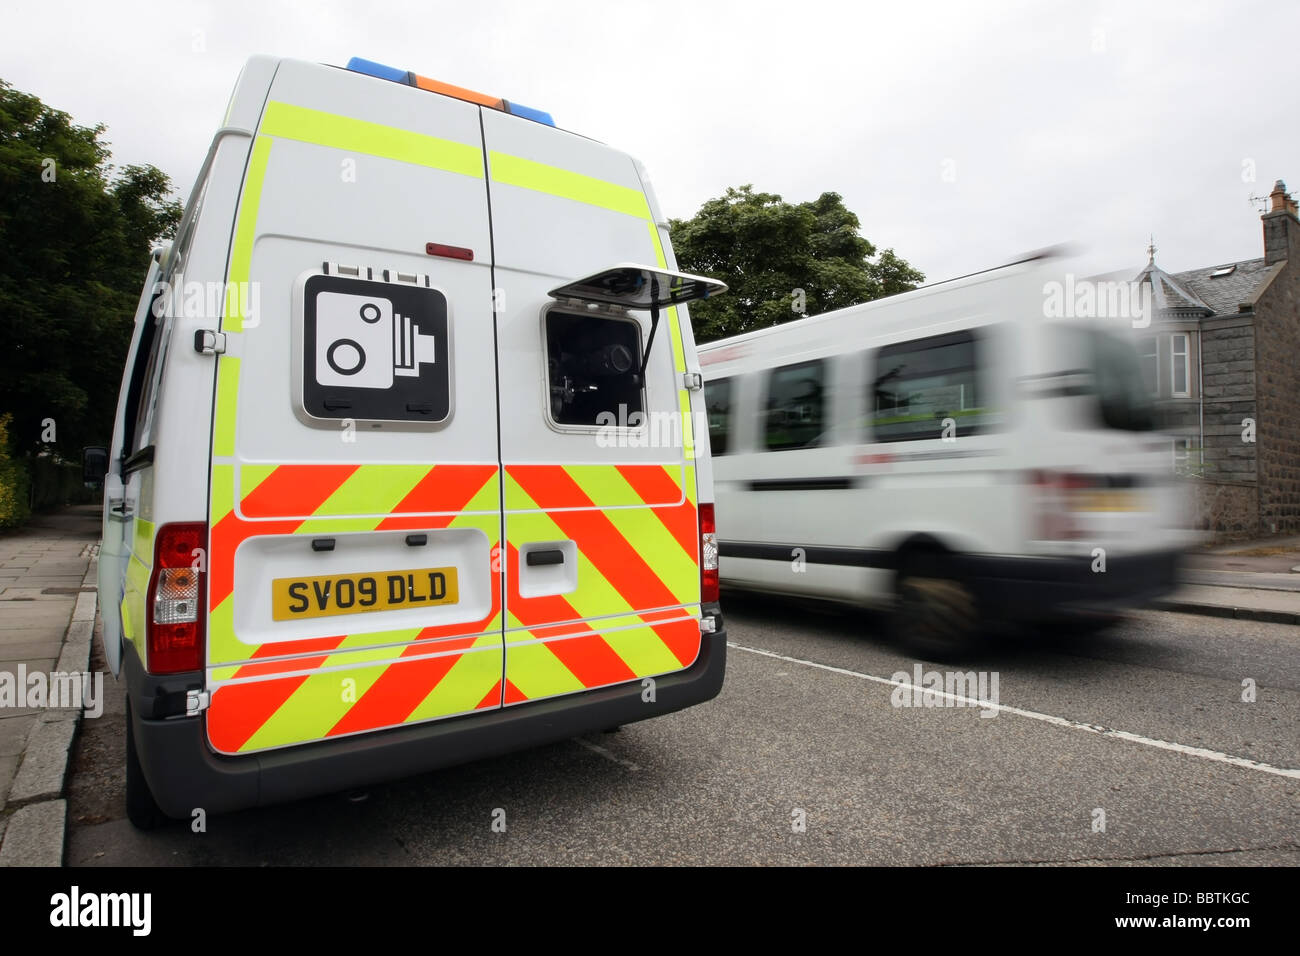 A Safety Camera van parked at the side of a road in Aberdeen, Scotland, UK, with a blurred minibus driving by - Stock Image